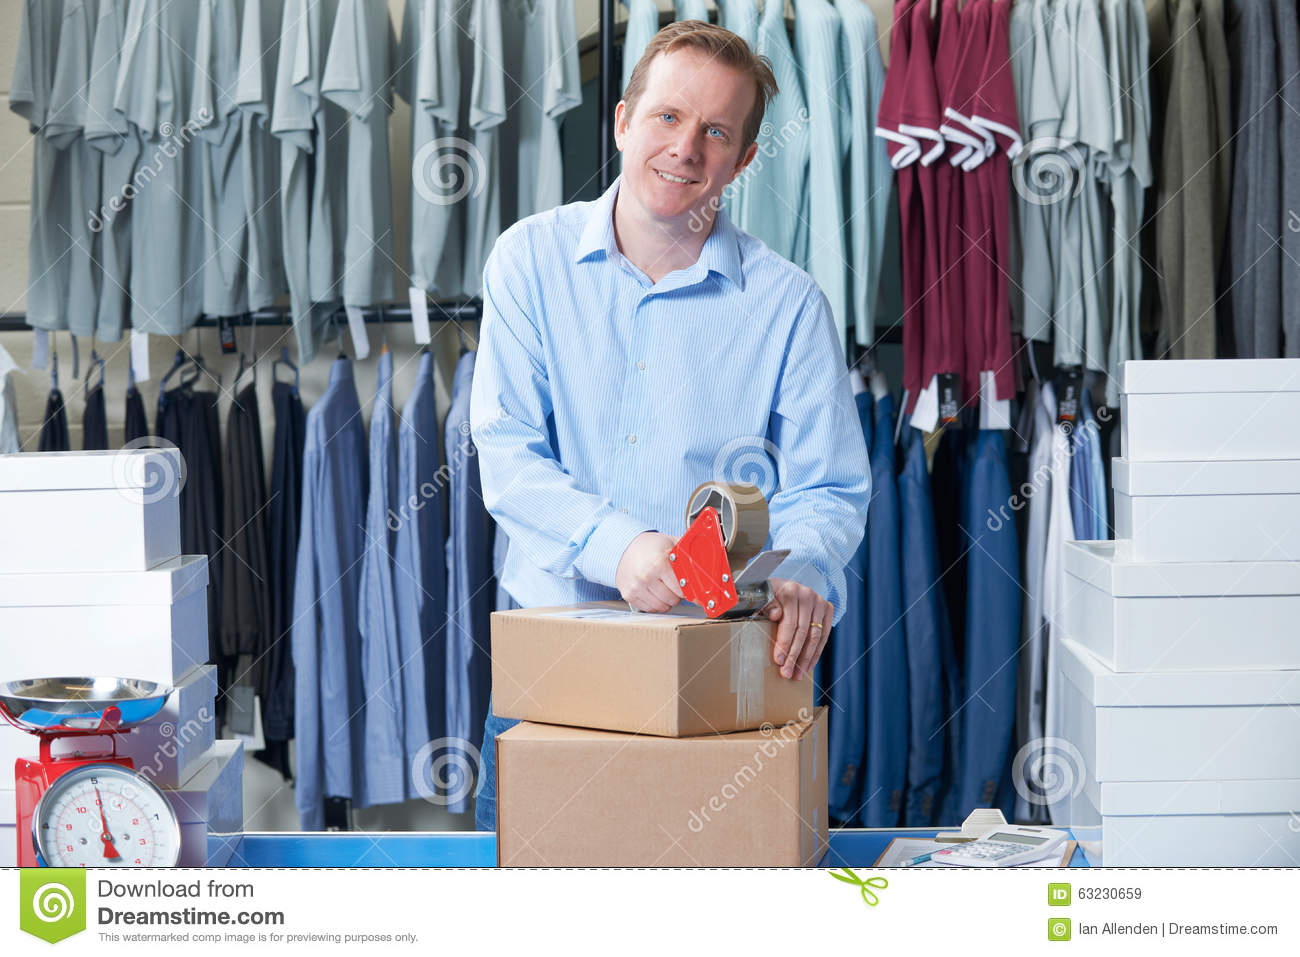 Running an online clothing store